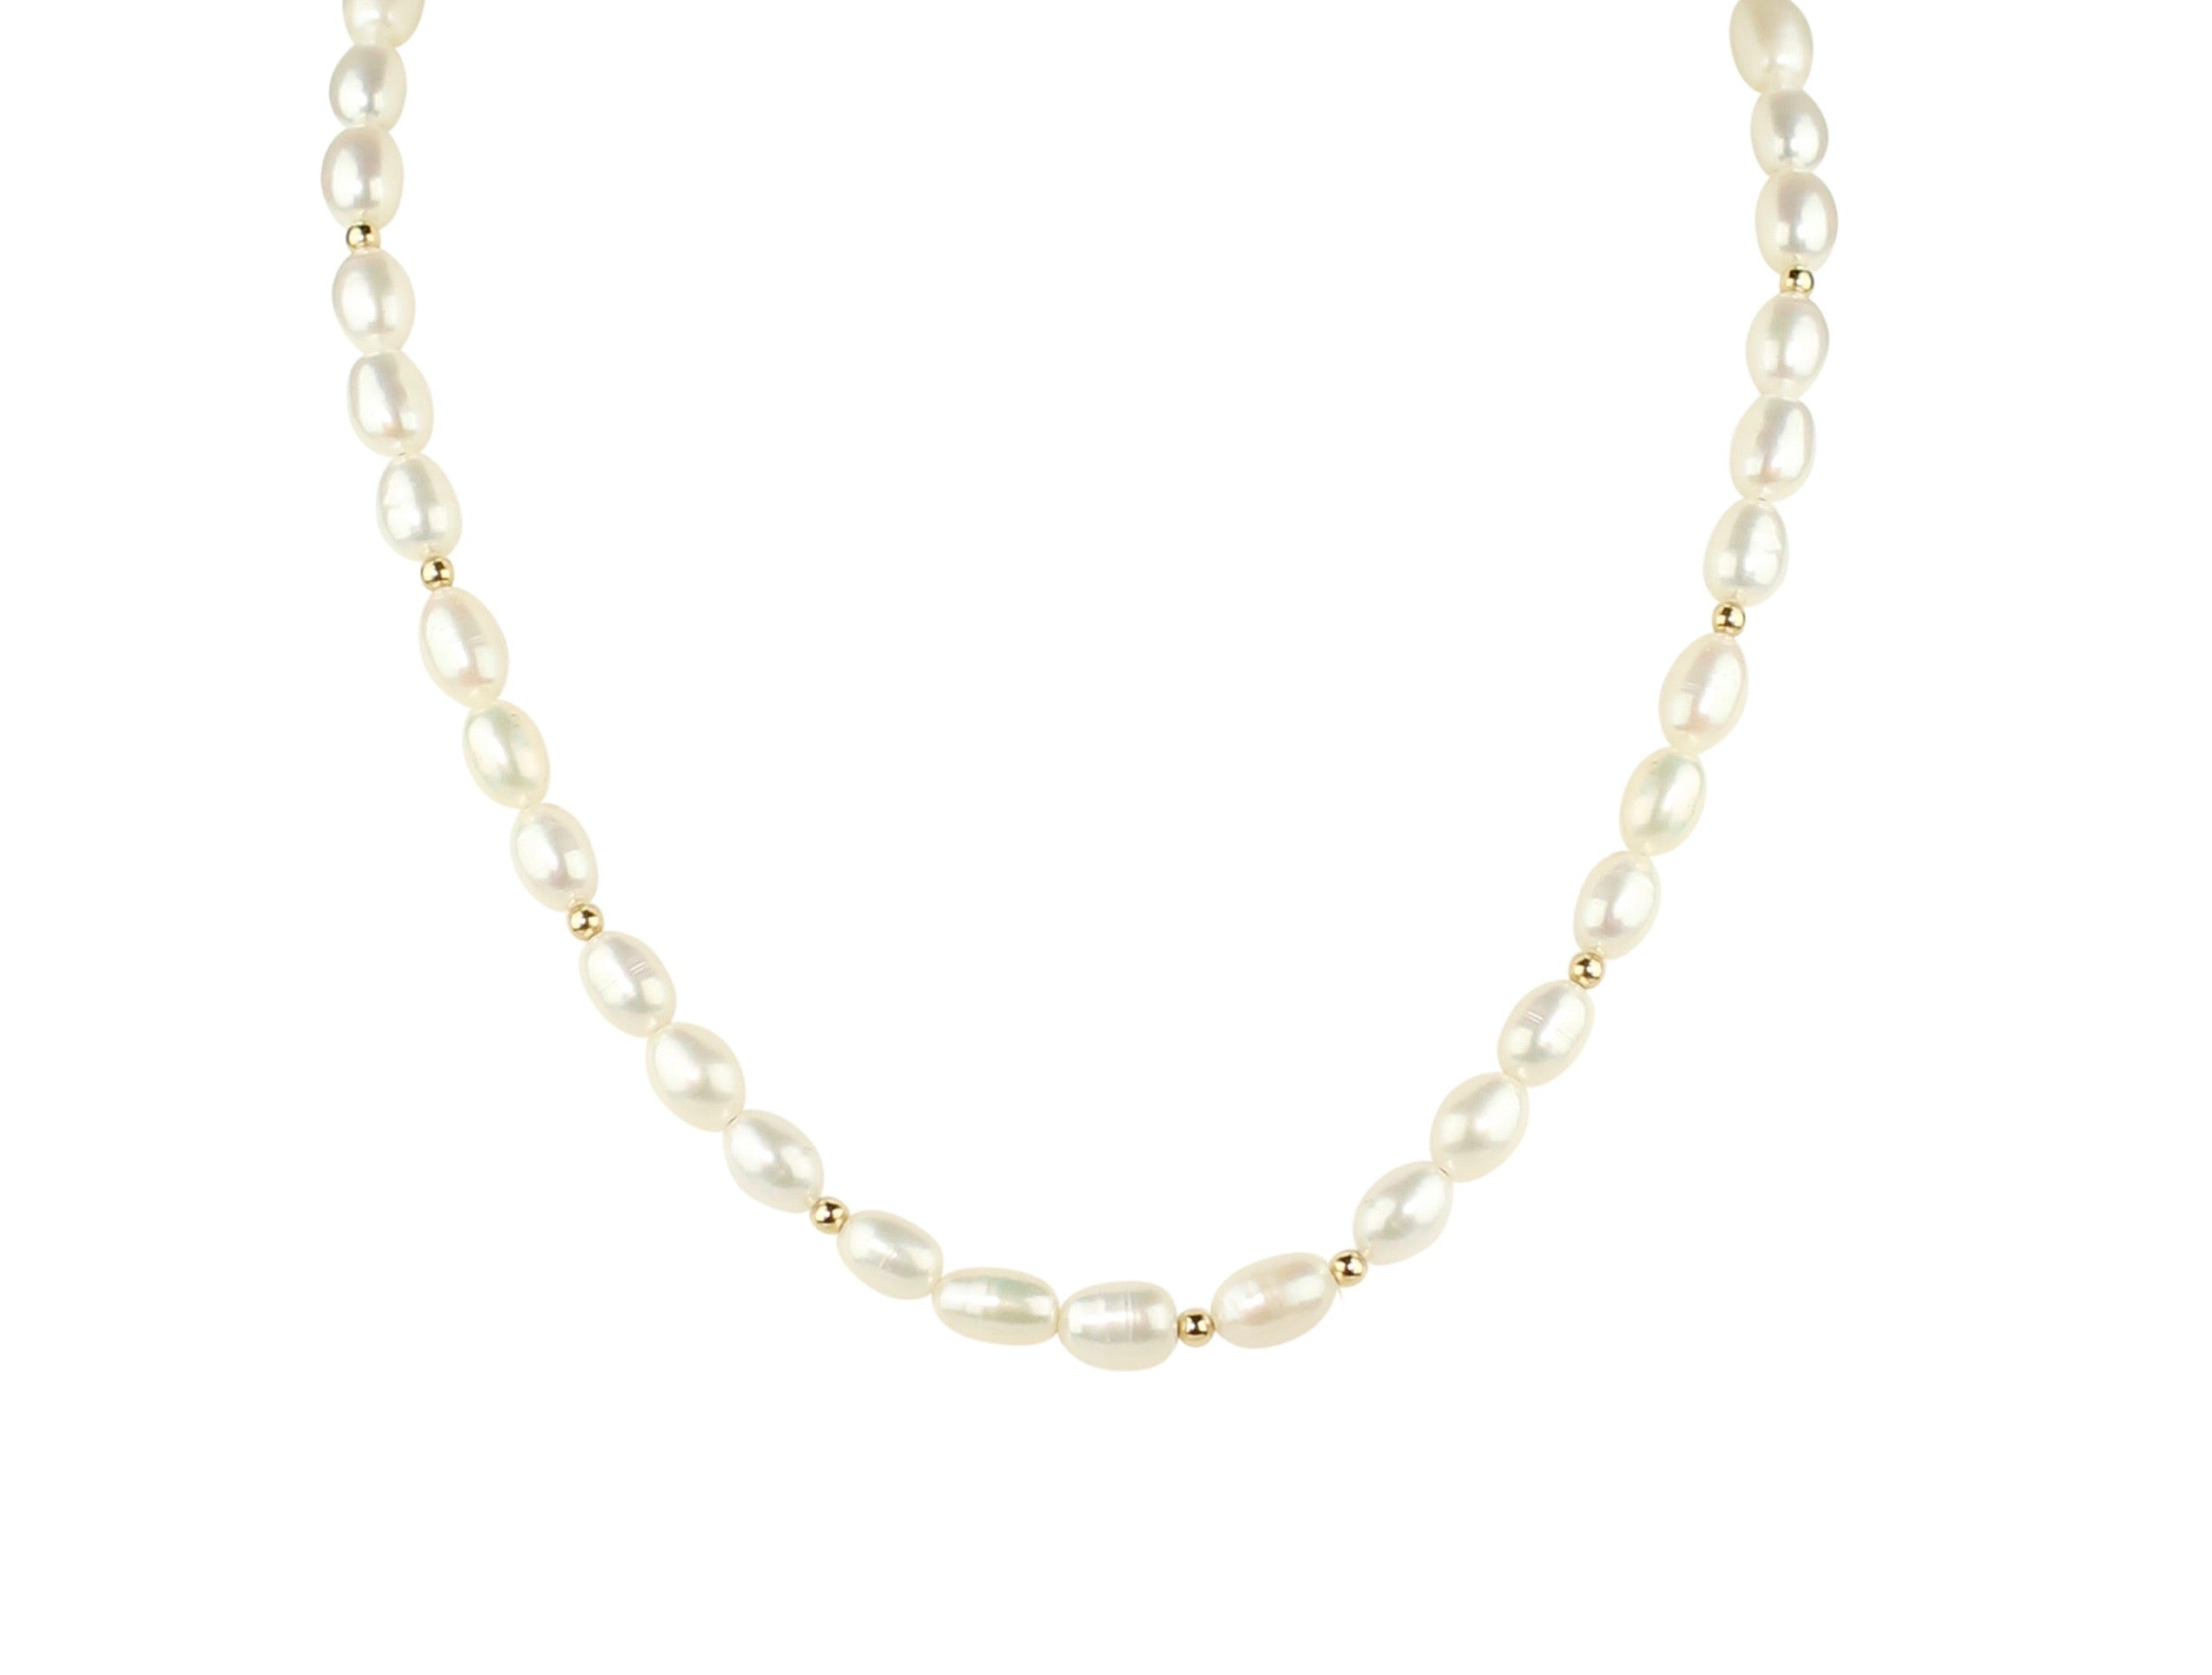 Asher Pearls Necklace